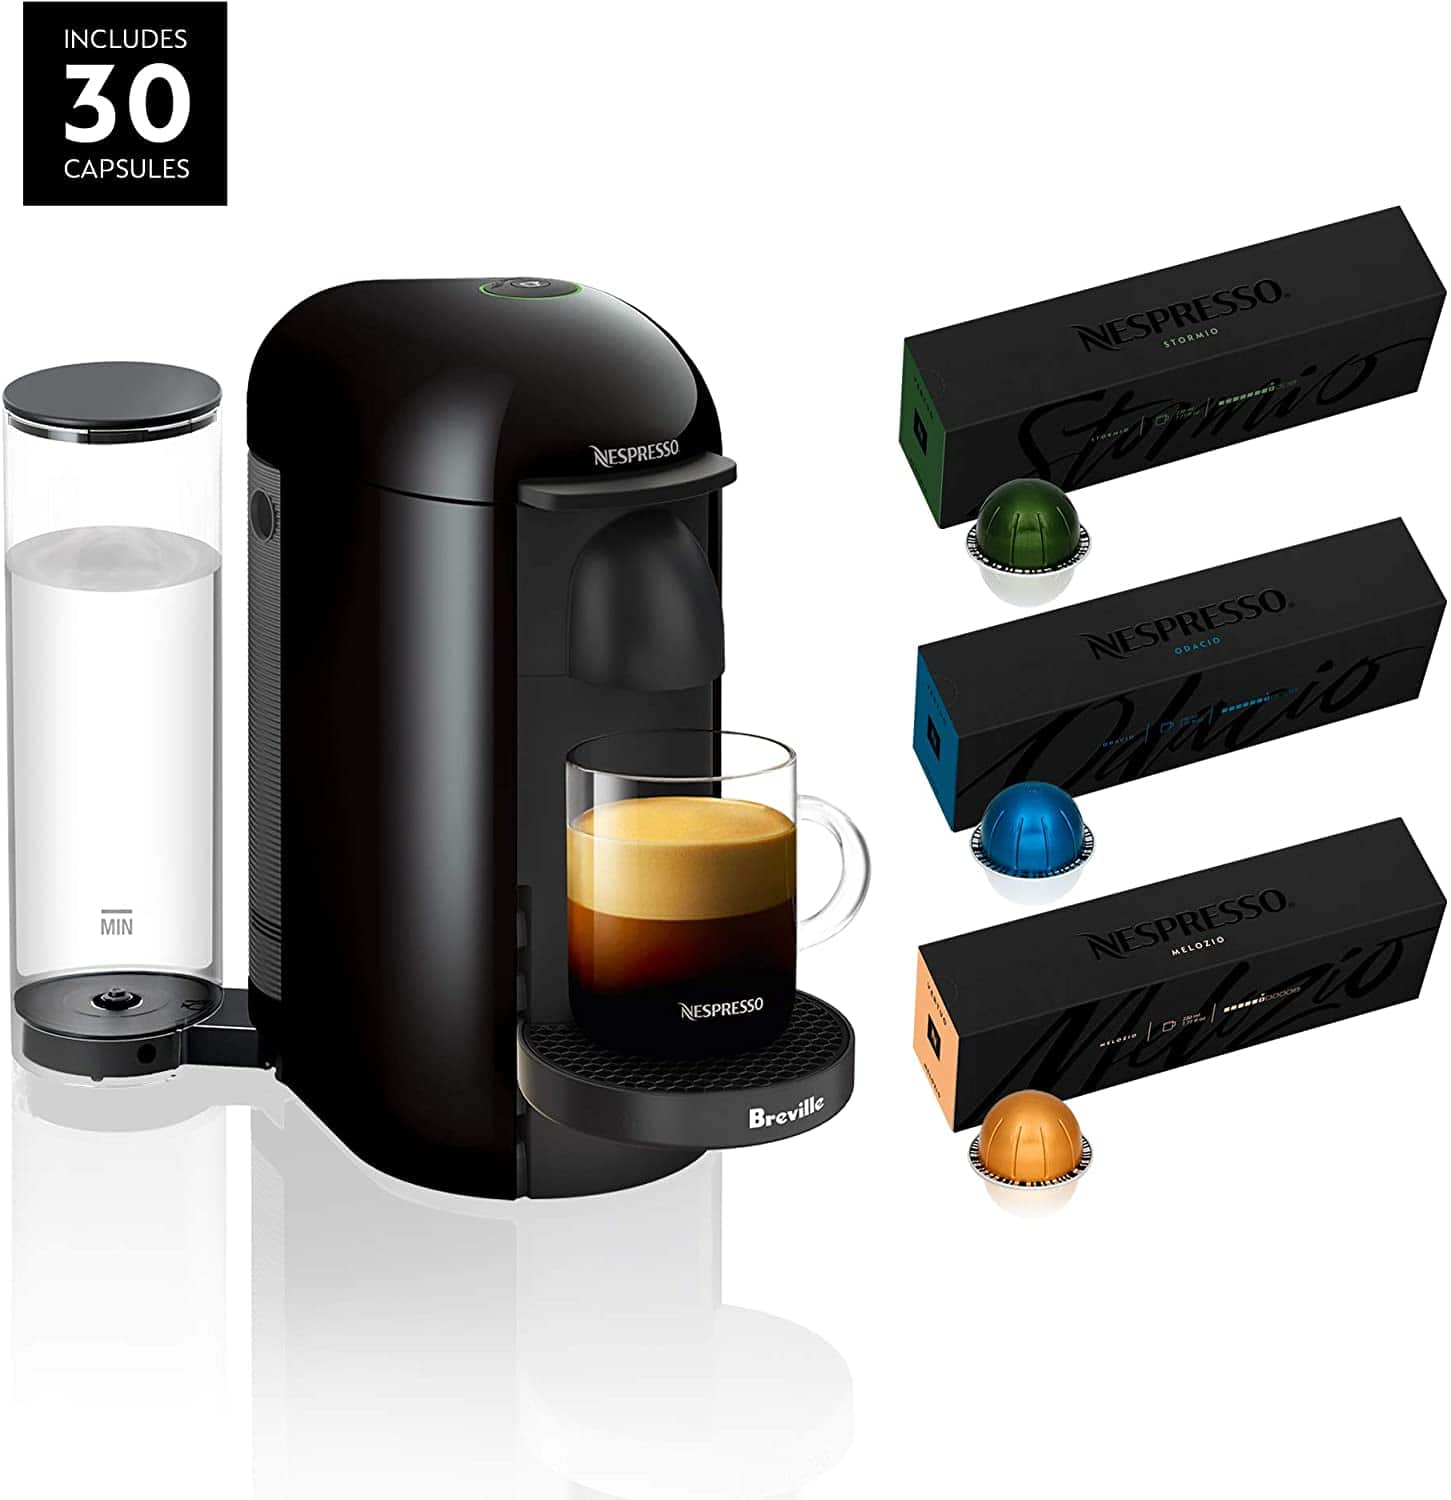 Breville Nespresso VertuoPlus Coffee and Espresso Maker + 30-Count Nespresso VertuoLine Coffee Pods Variety Pack $109.99 + Free Shipping via Amazon